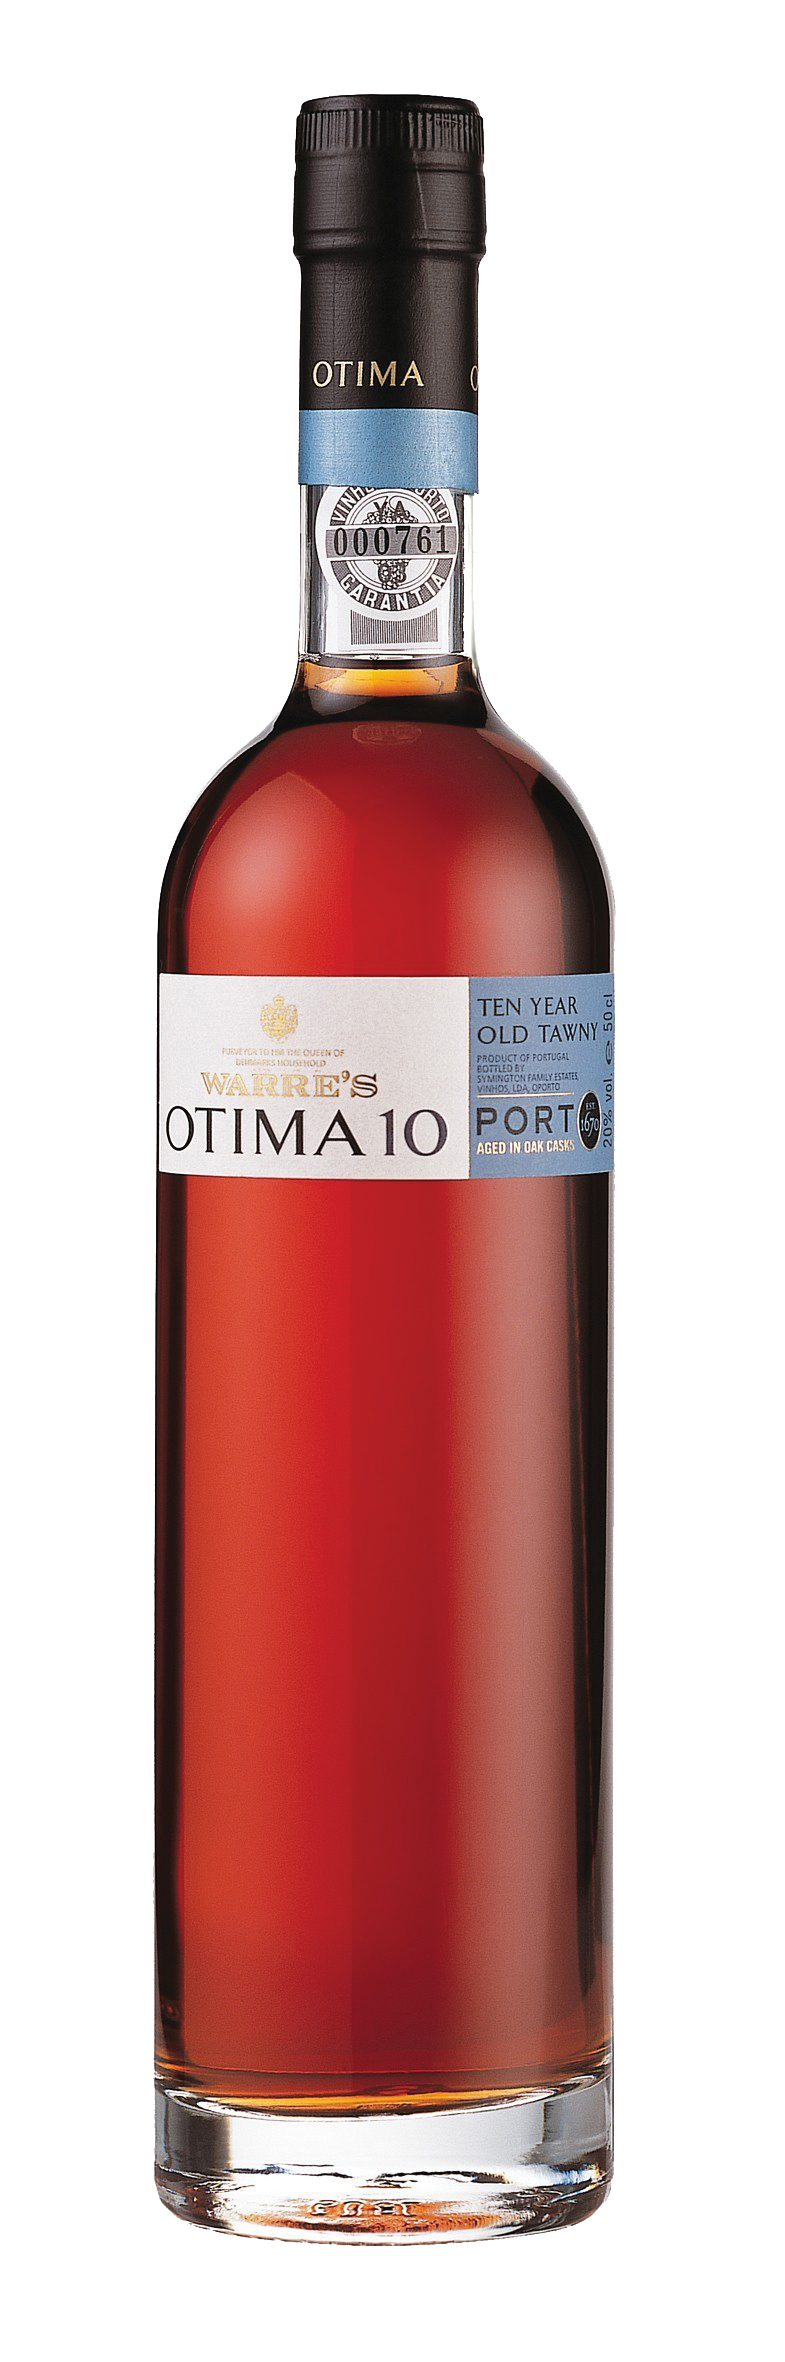 Warre's Otima 10 Year Old Tawny Port Bottle.jpg